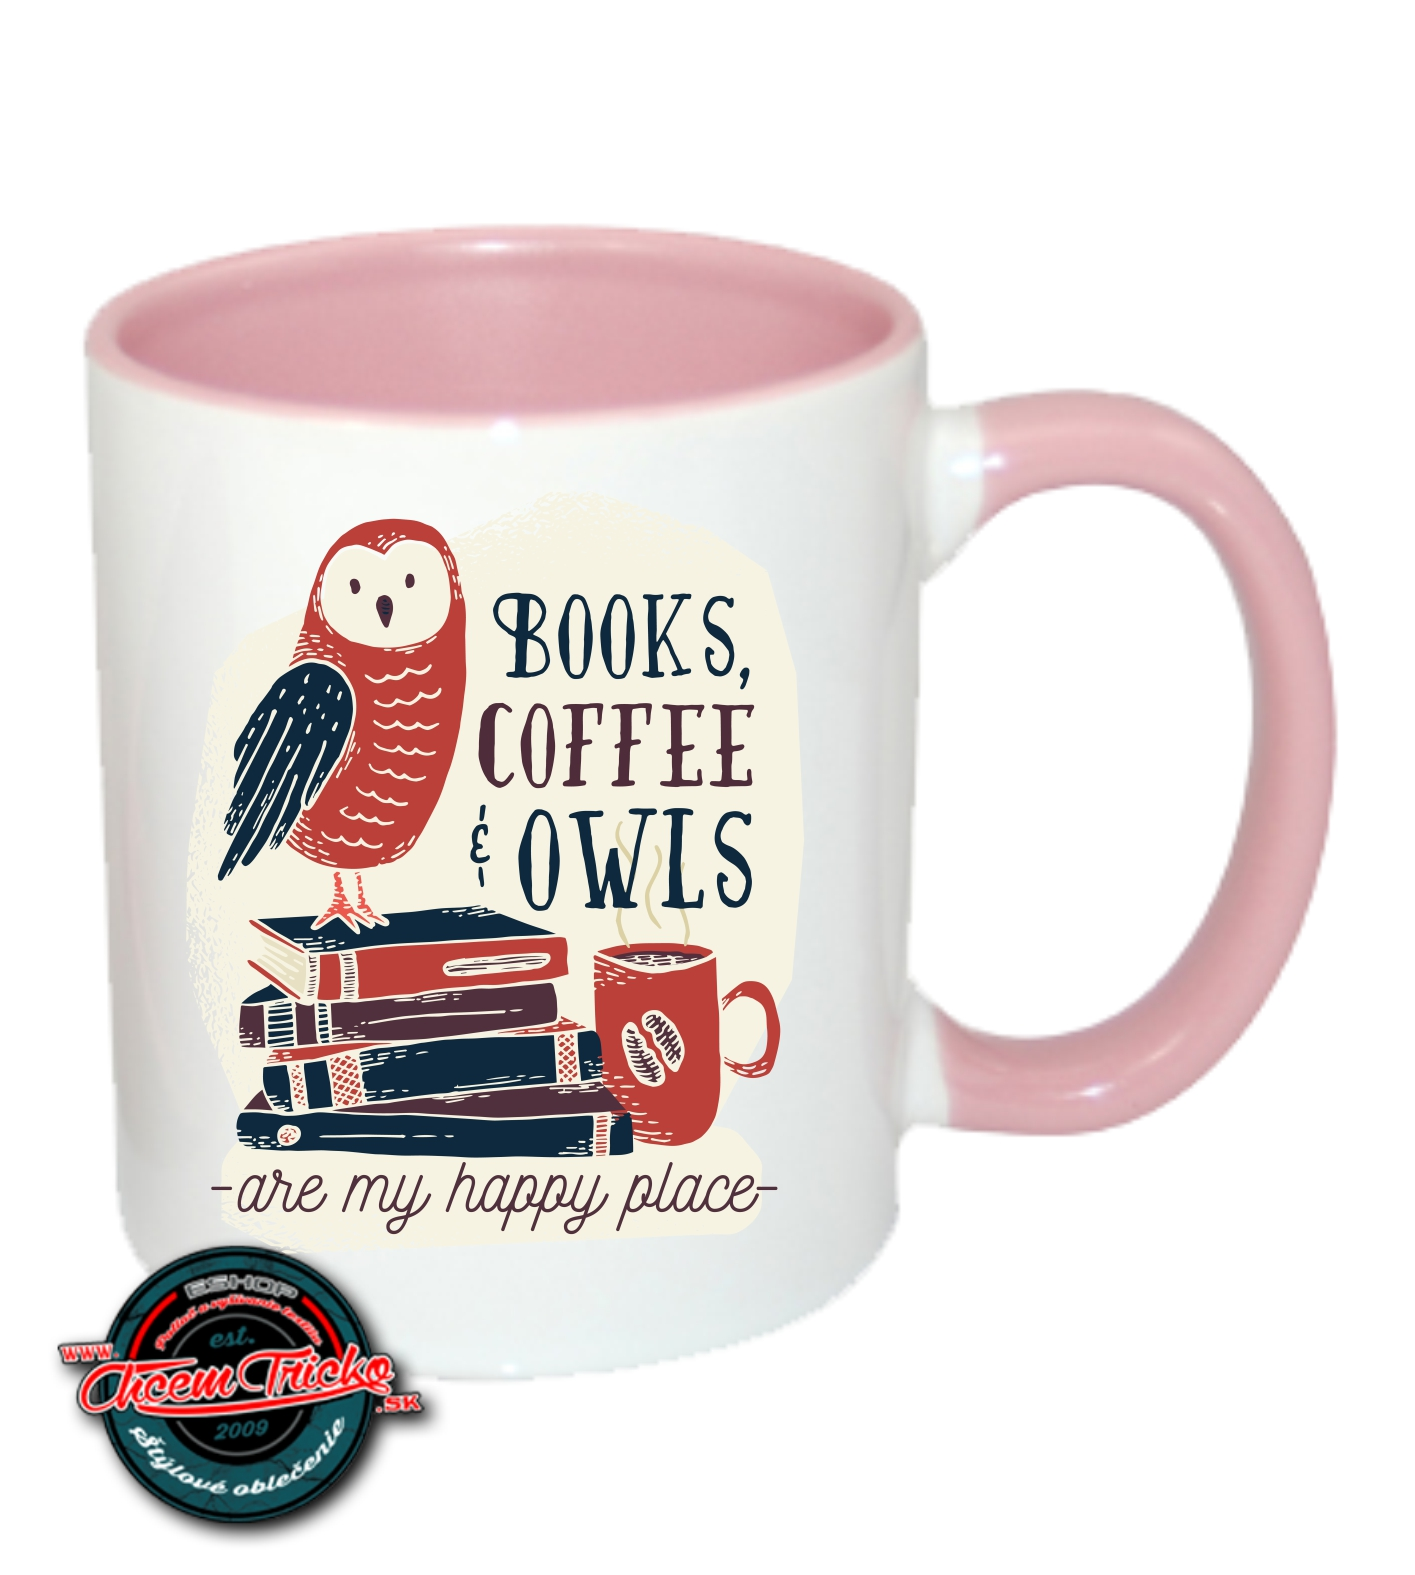 Hrnček Books, Coffee, Owls